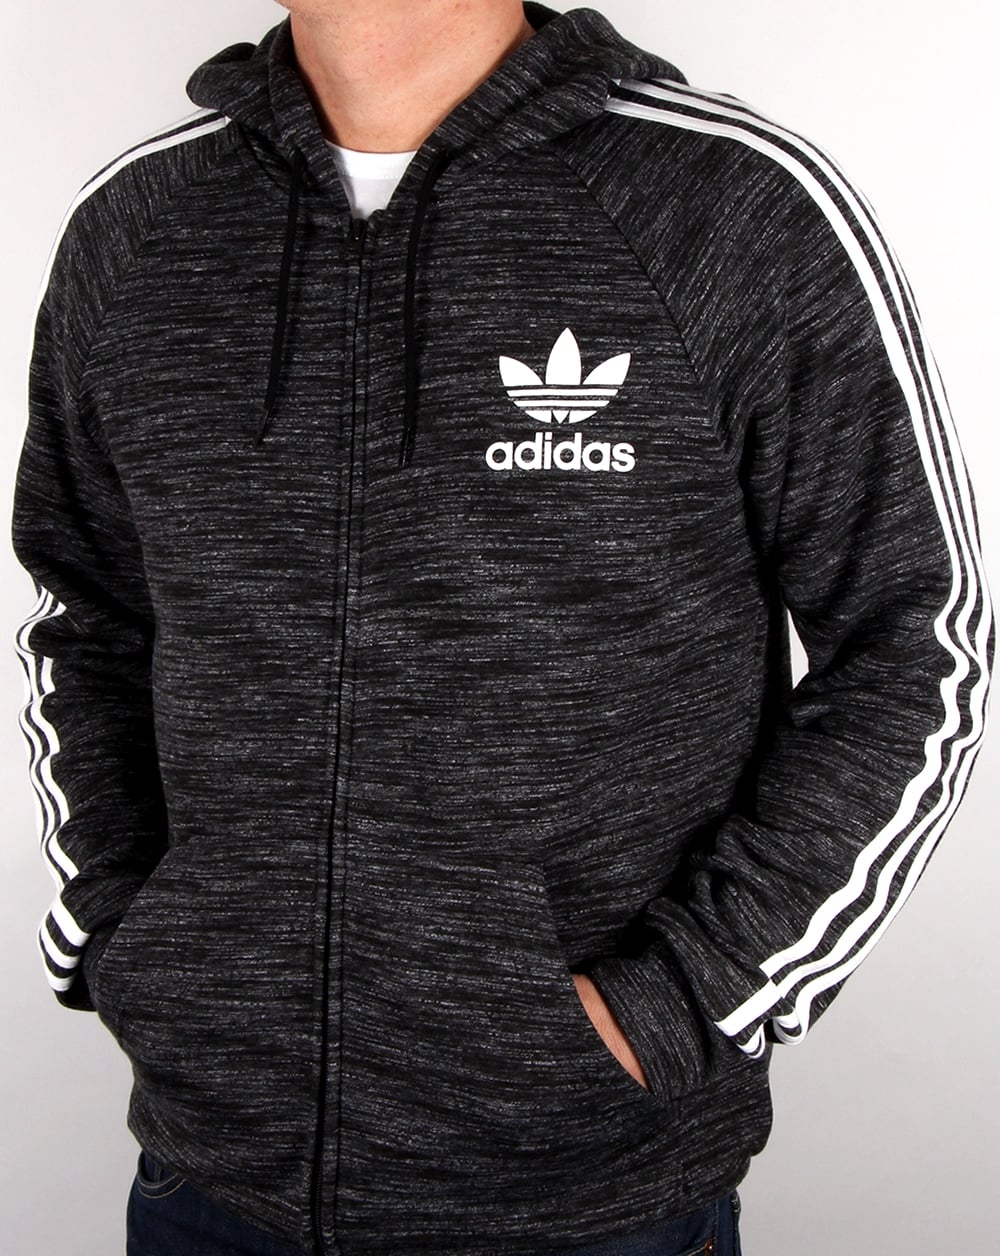 adidas originals california fz hoody black men 39 s top. Black Bedroom Furniture Sets. Home Design Ideas